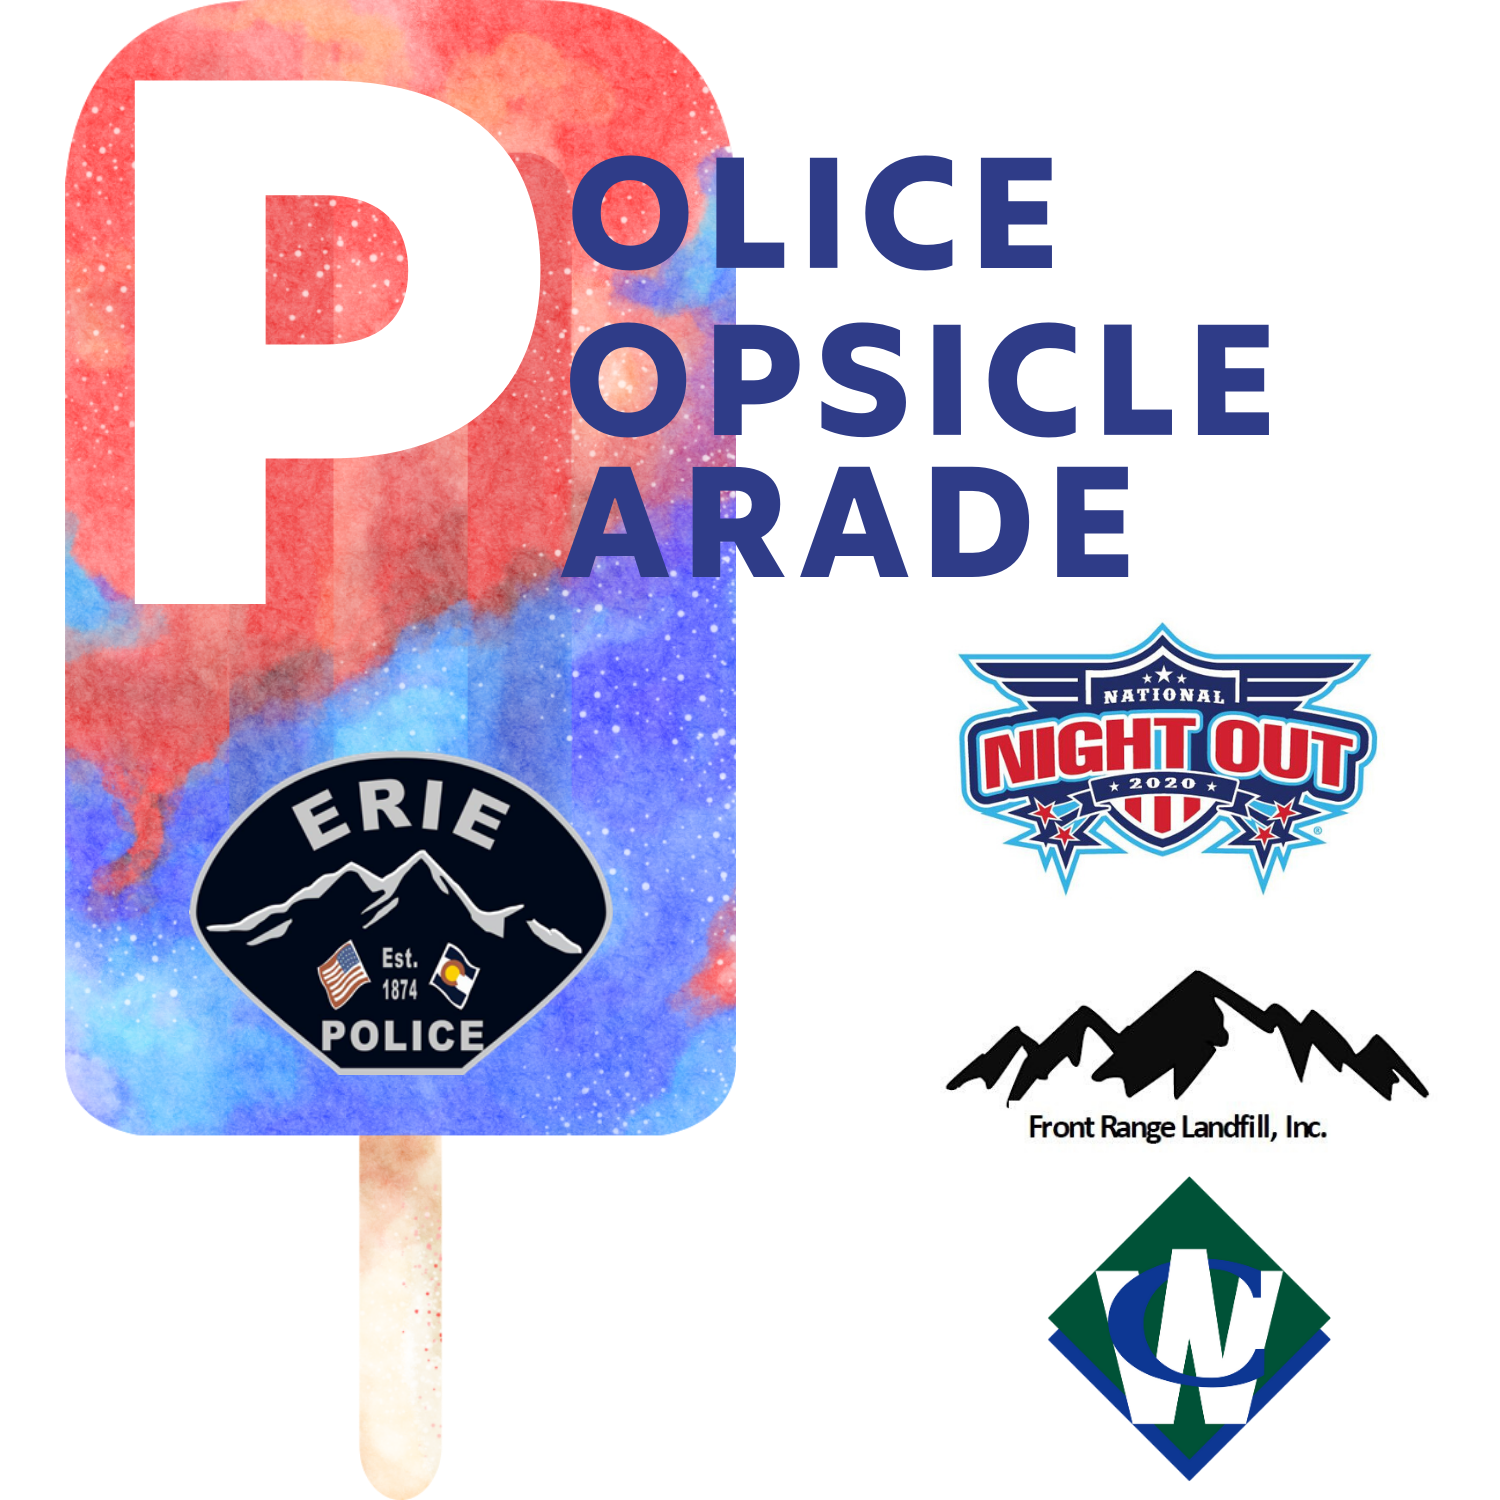 Police popsicle parade (1)